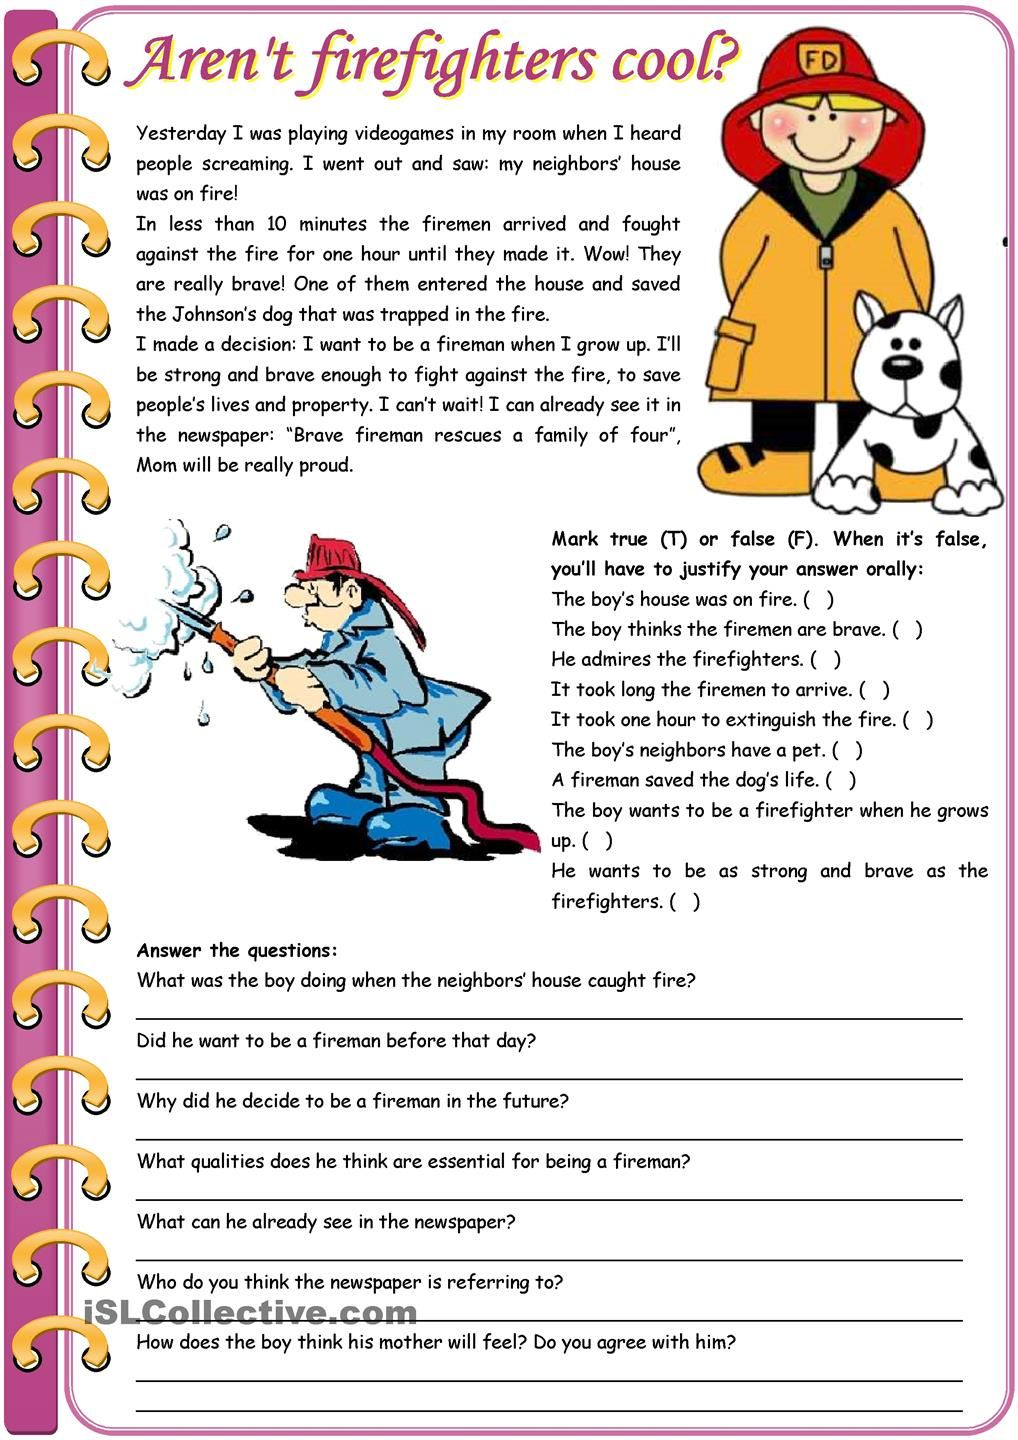 Worksheet Comprehension Reading free printable reading comprehension worksheets firefighters cool grammar comparative